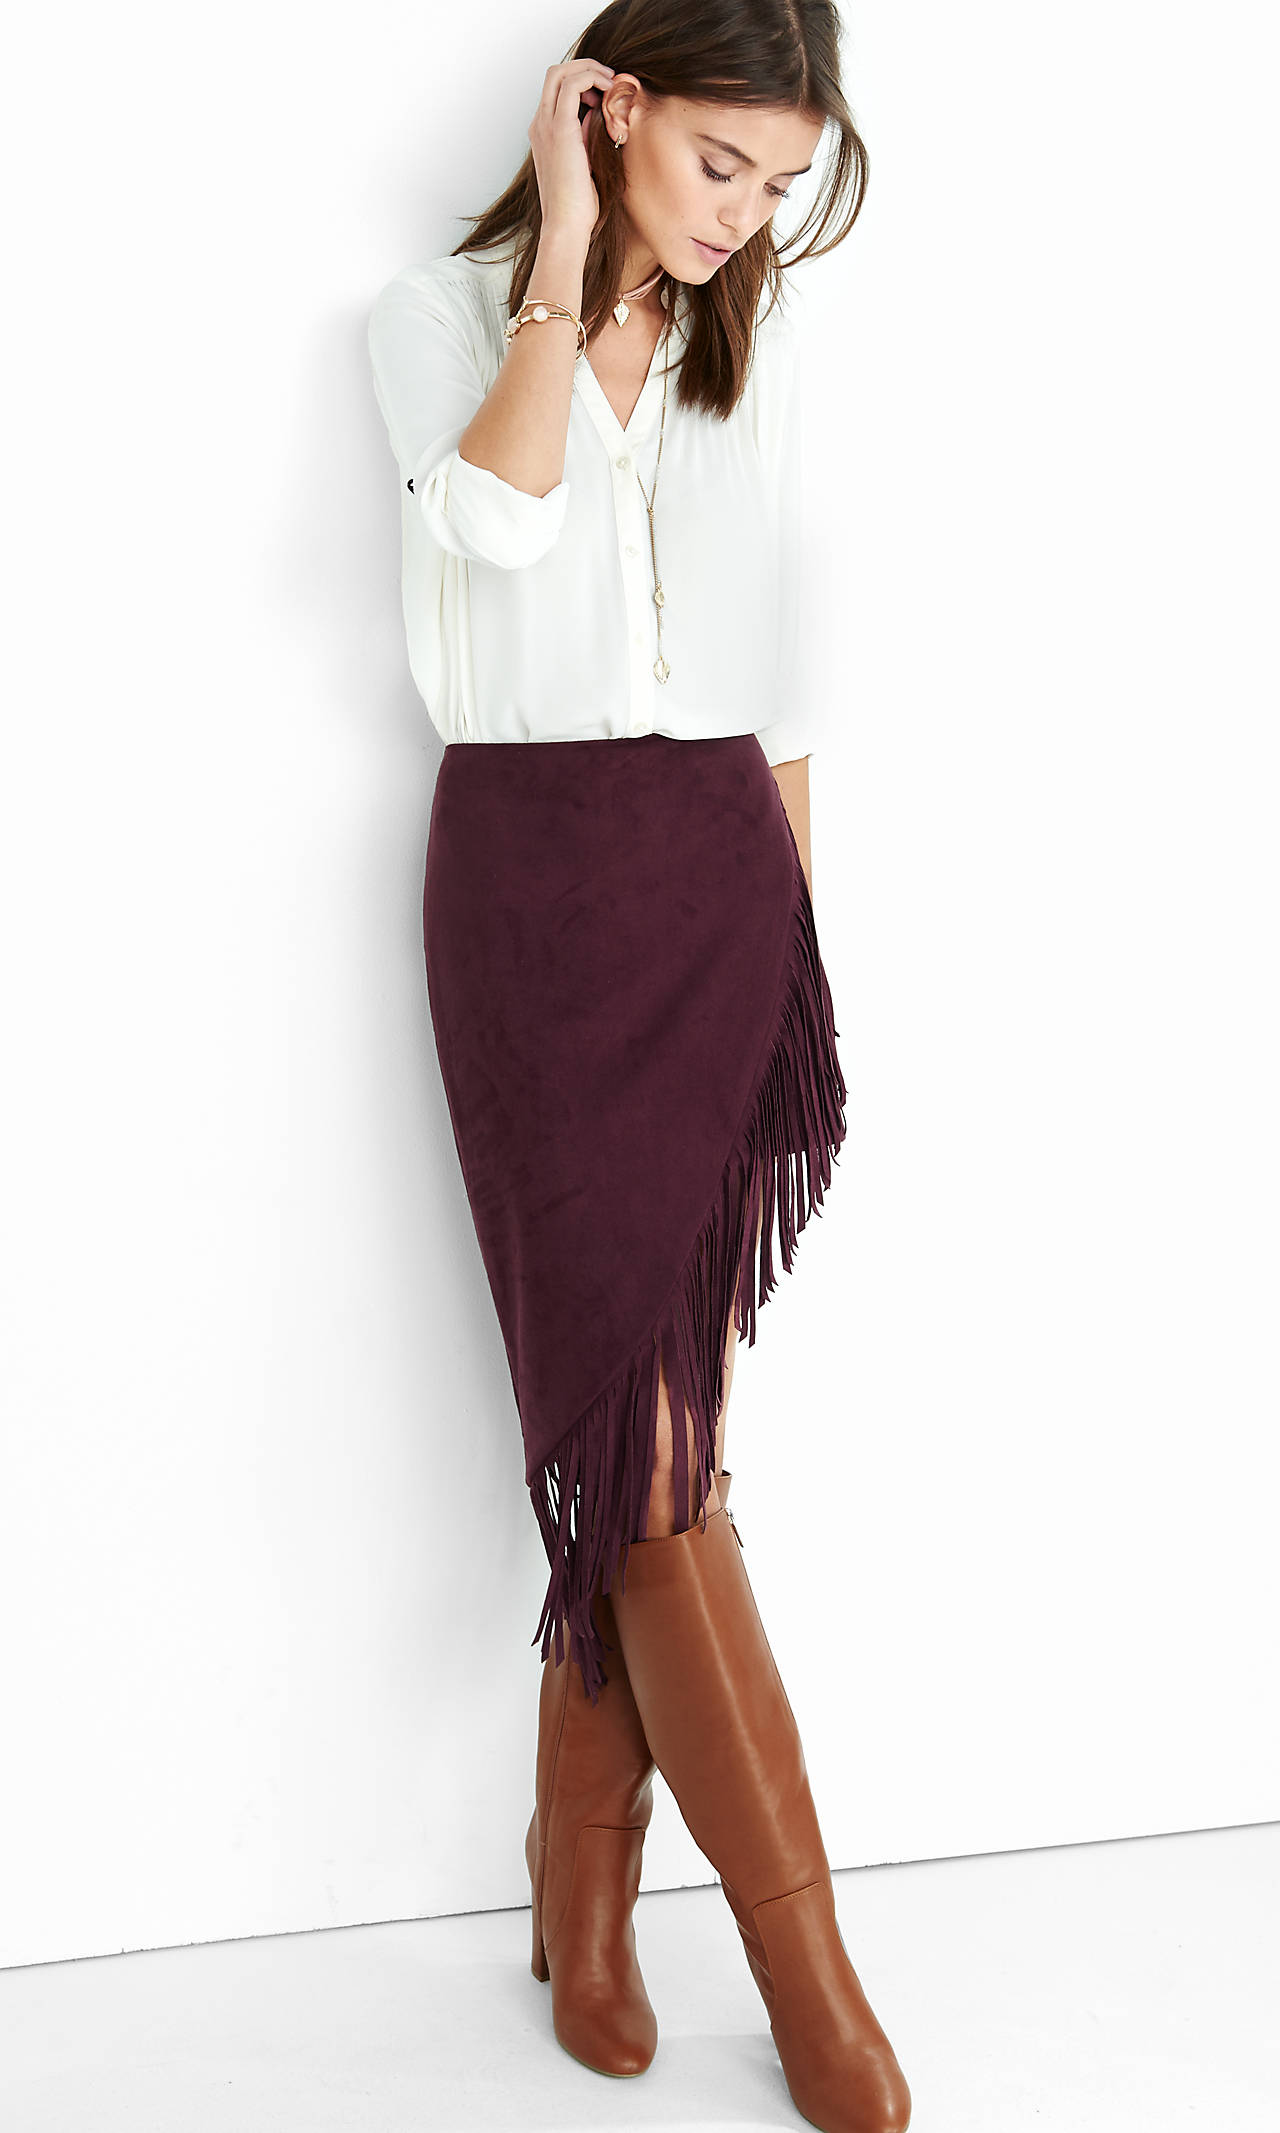 burgundy-pencil-skirt-fringe-cognac-shoe-boots-white-top-blouse-hairr-necklace-fall-winter-lunch.jpg